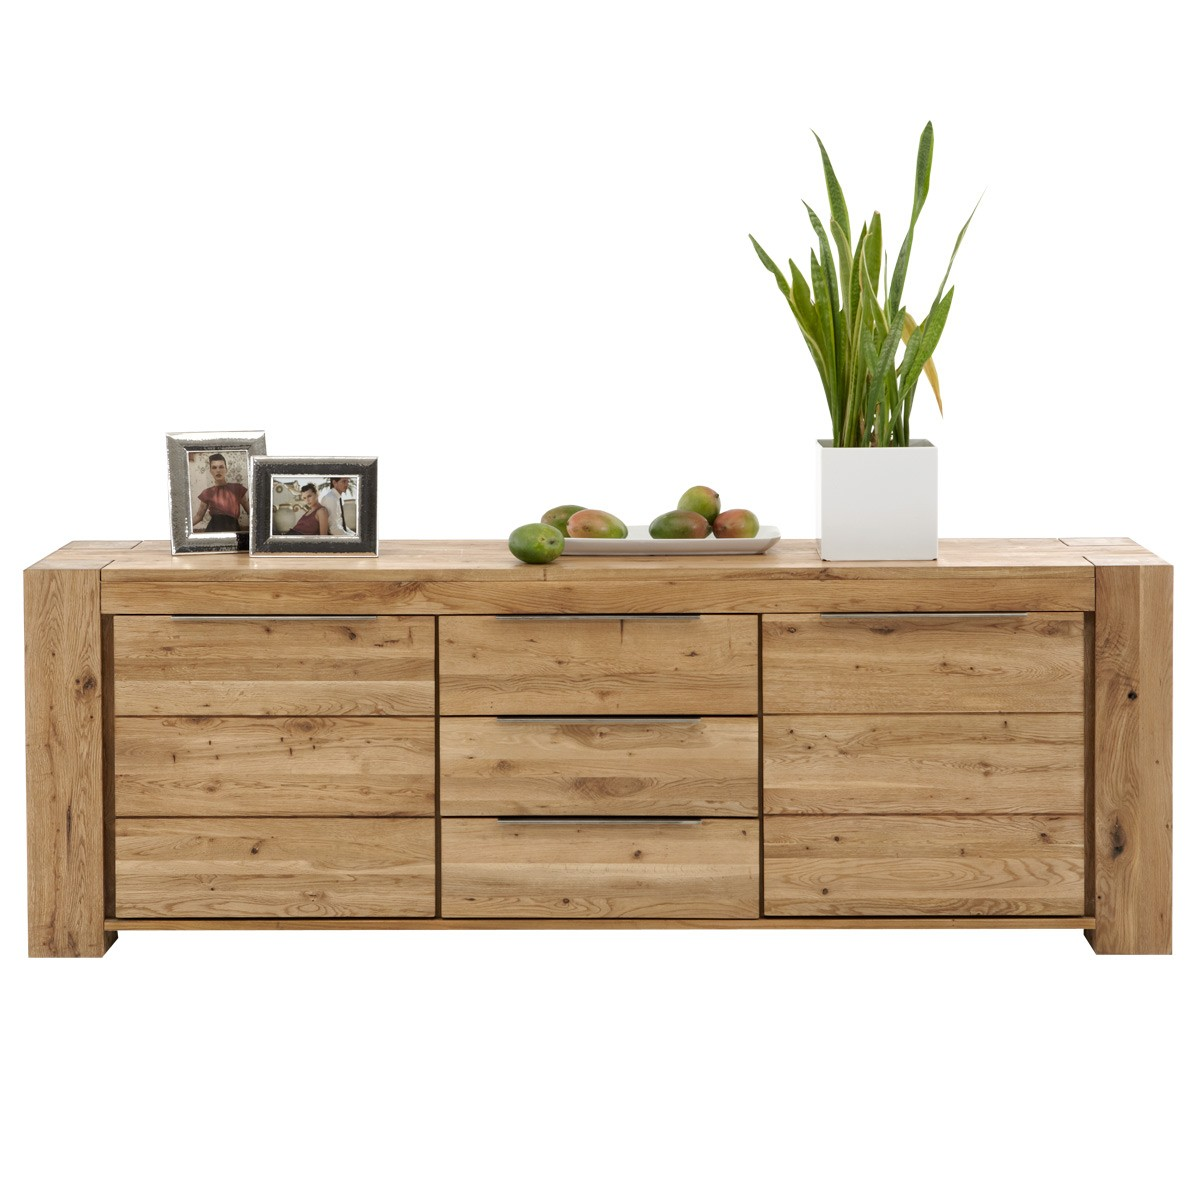 sideboard kommode anrichte t ren schubladen wildeiche massiv ge lt neu ebay. Black Bedroom Furniture Sets. Home Design Ideas